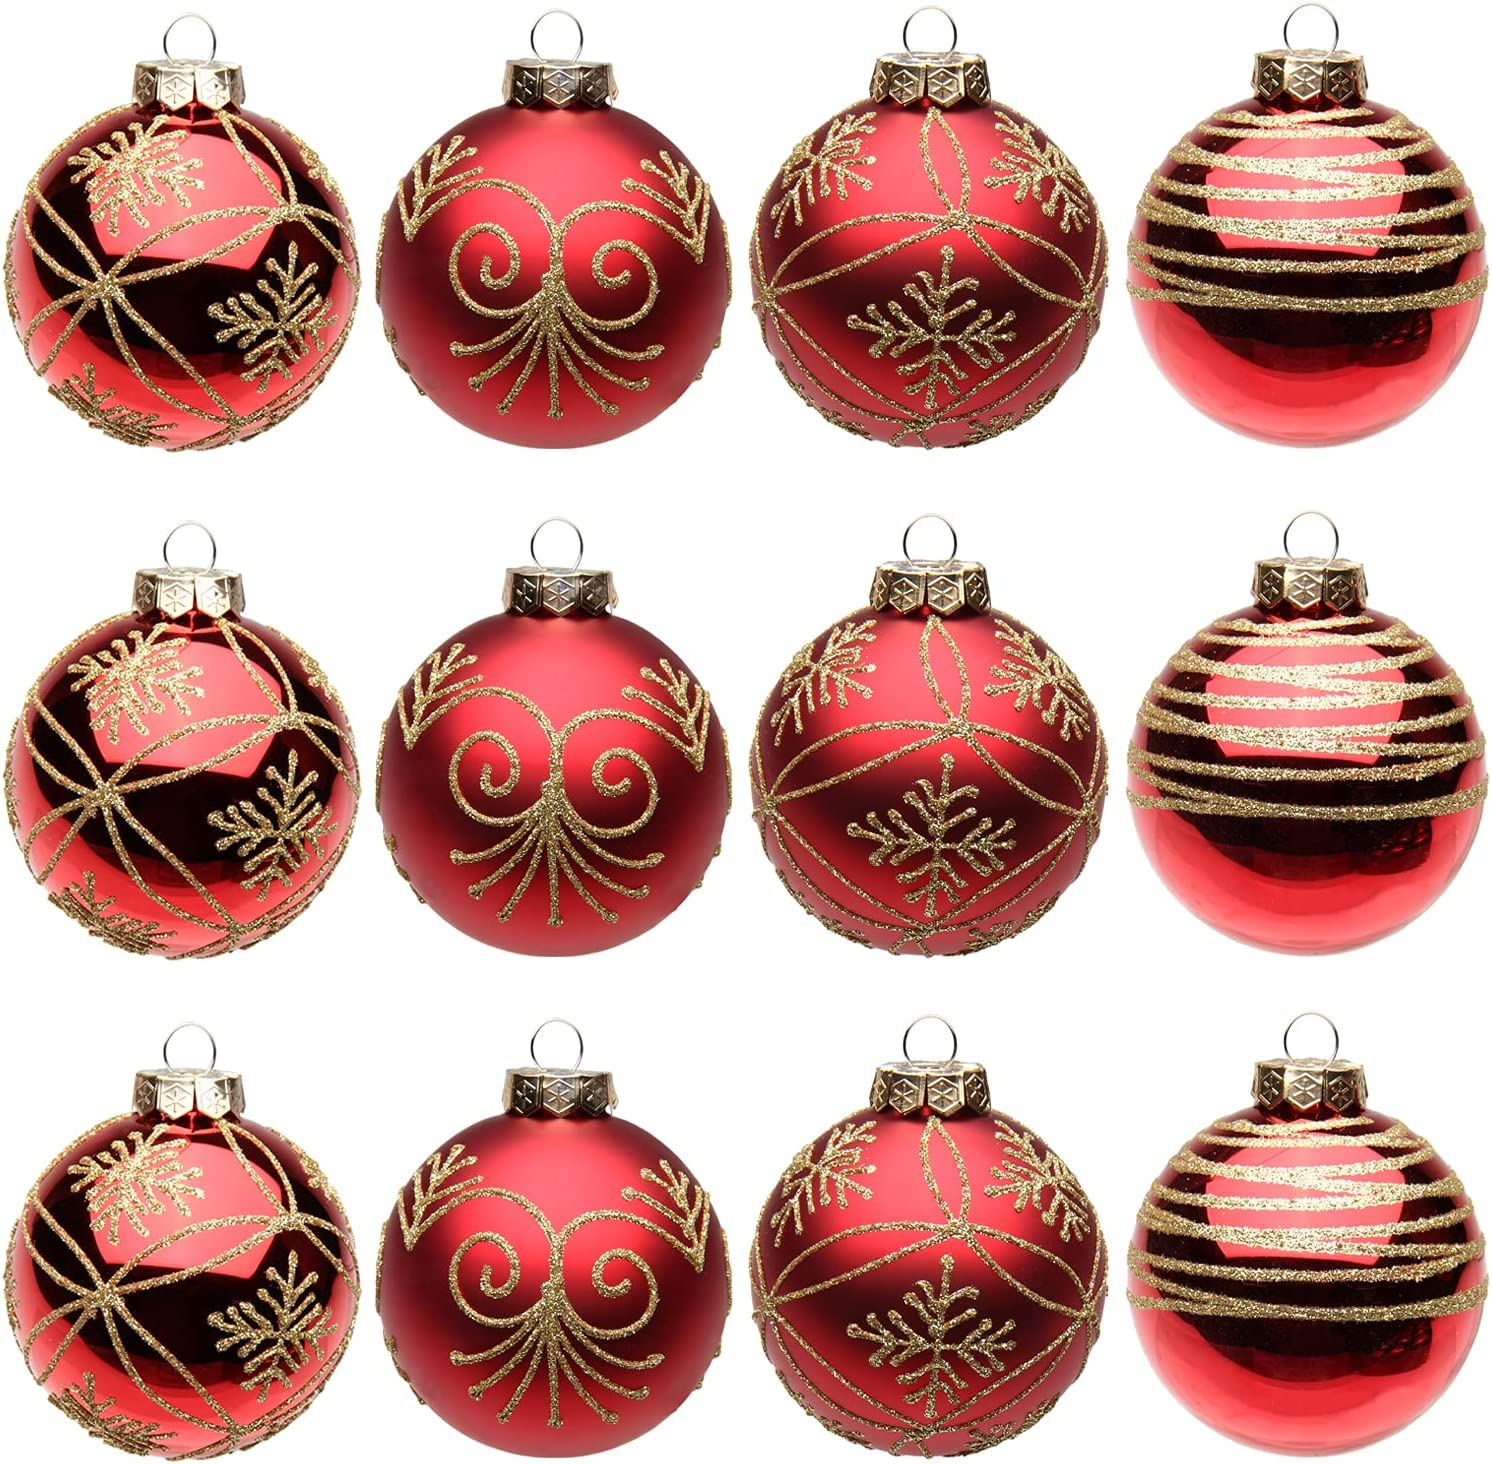 12 Pcs Christmas Ball Ornaments Shatterproof Xmas Tree Decorations Seamless Painted Glass Hanging Christmas Balls Ornaments for Holiday Wedding Party Home Decor (75mm/2.95